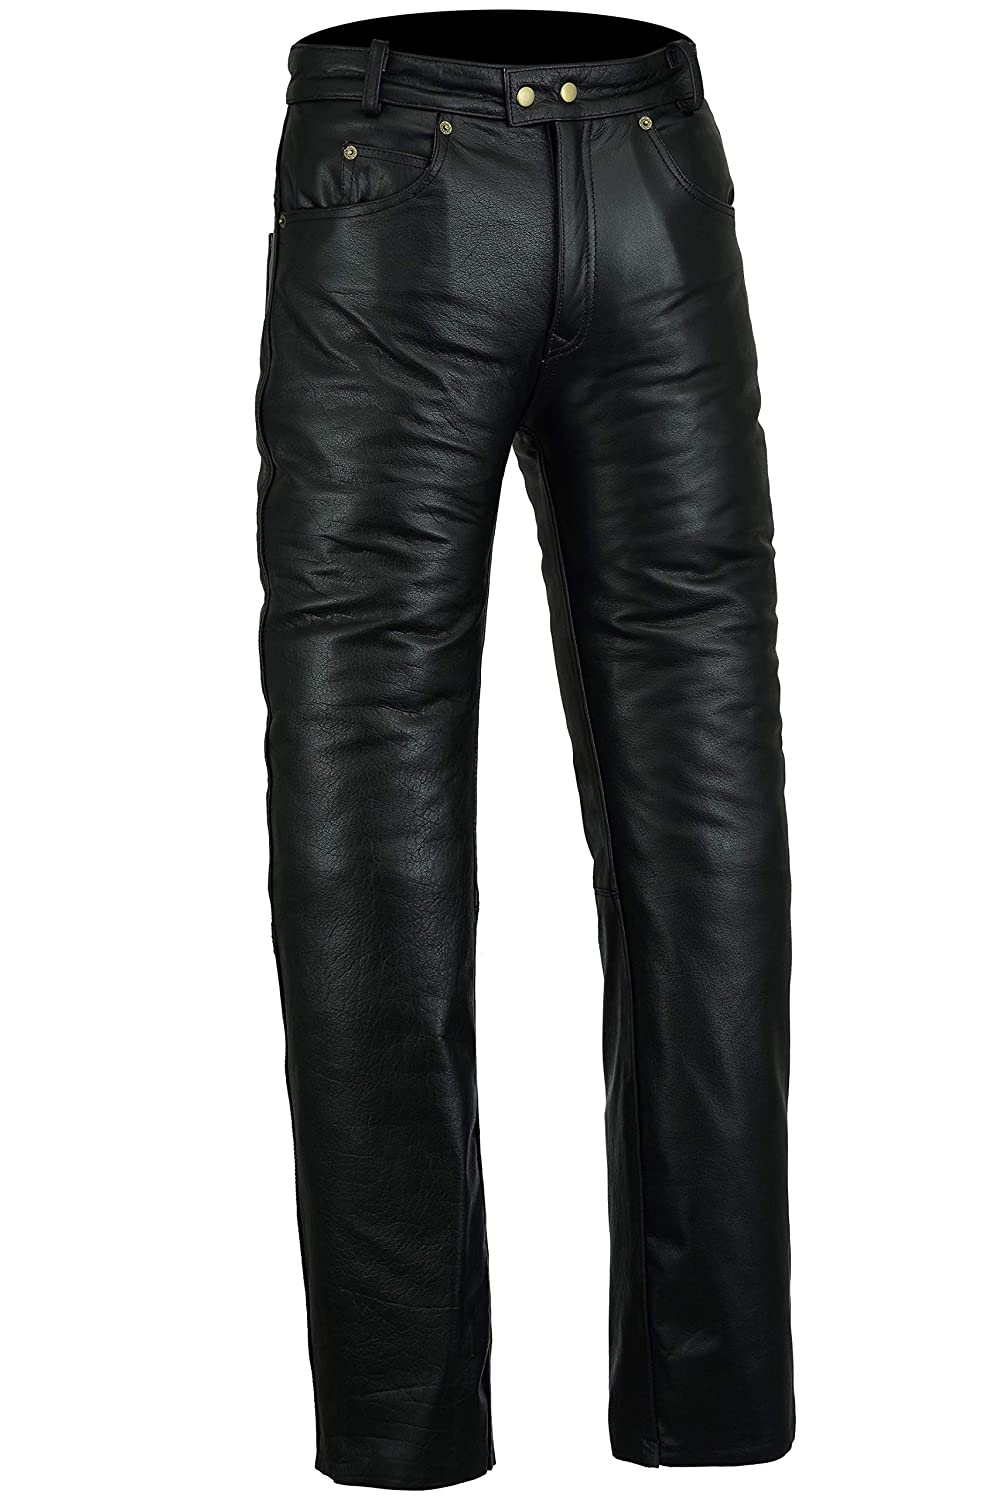 Bikers Gear Australia New Mens Soft Leather Rock and Roll Motorcycle Comfort Leather Jeans Trousers made from Premium Leather for Comfort Fit Size 2XL Black